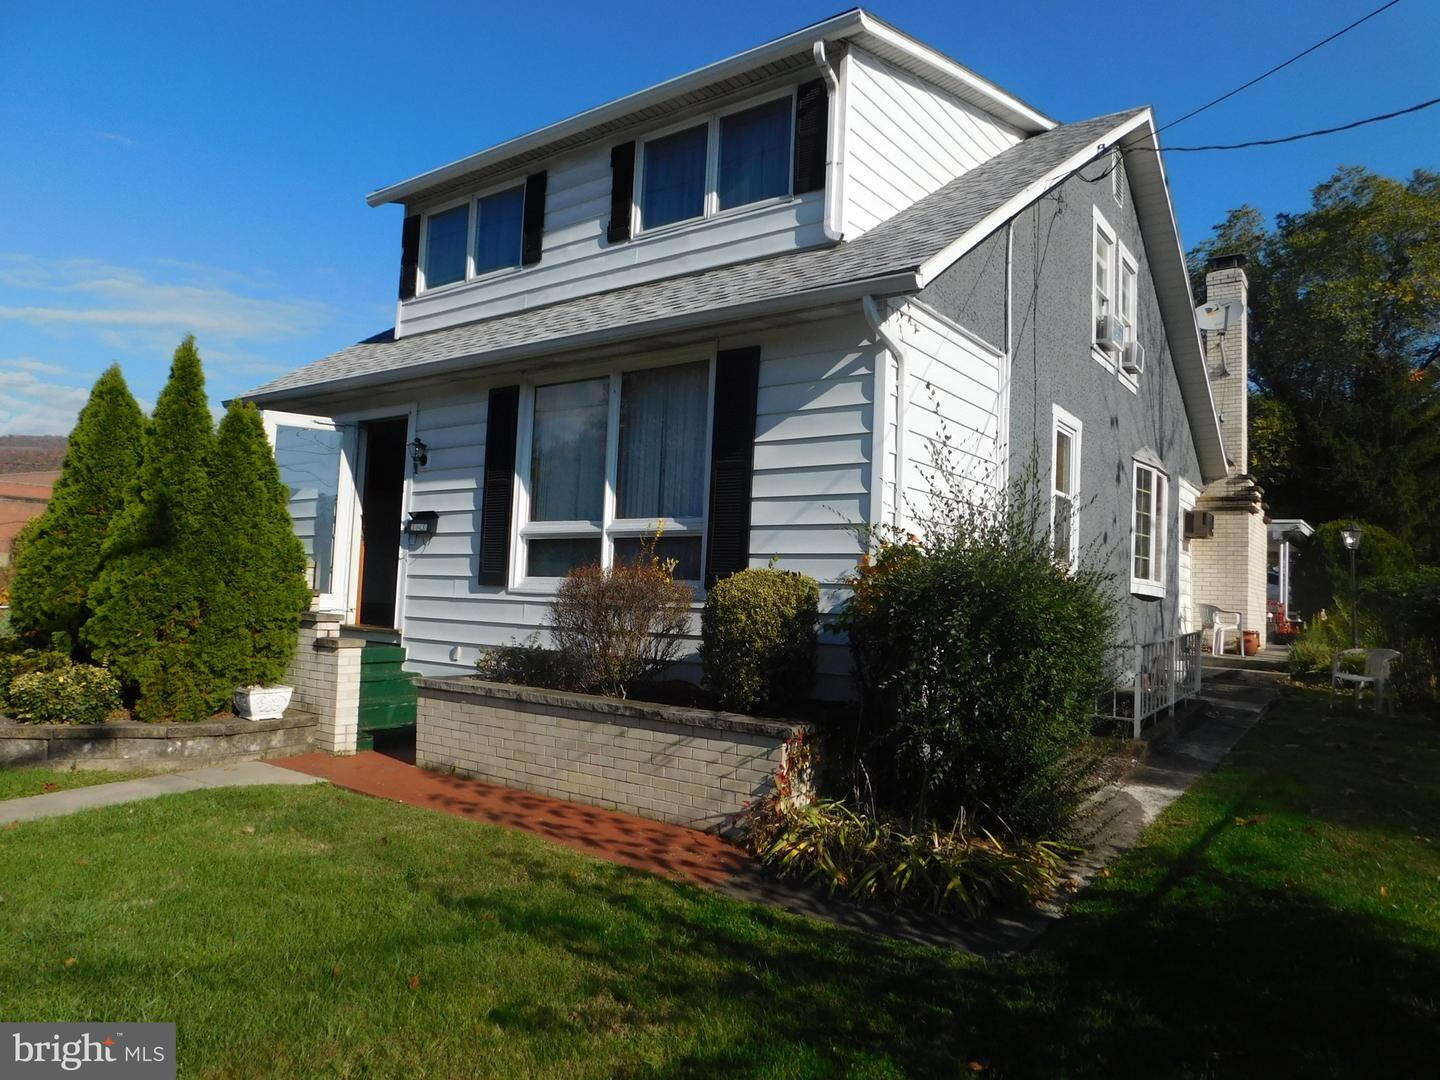 Property for Sale at Westernport, Maryland 21540 United States